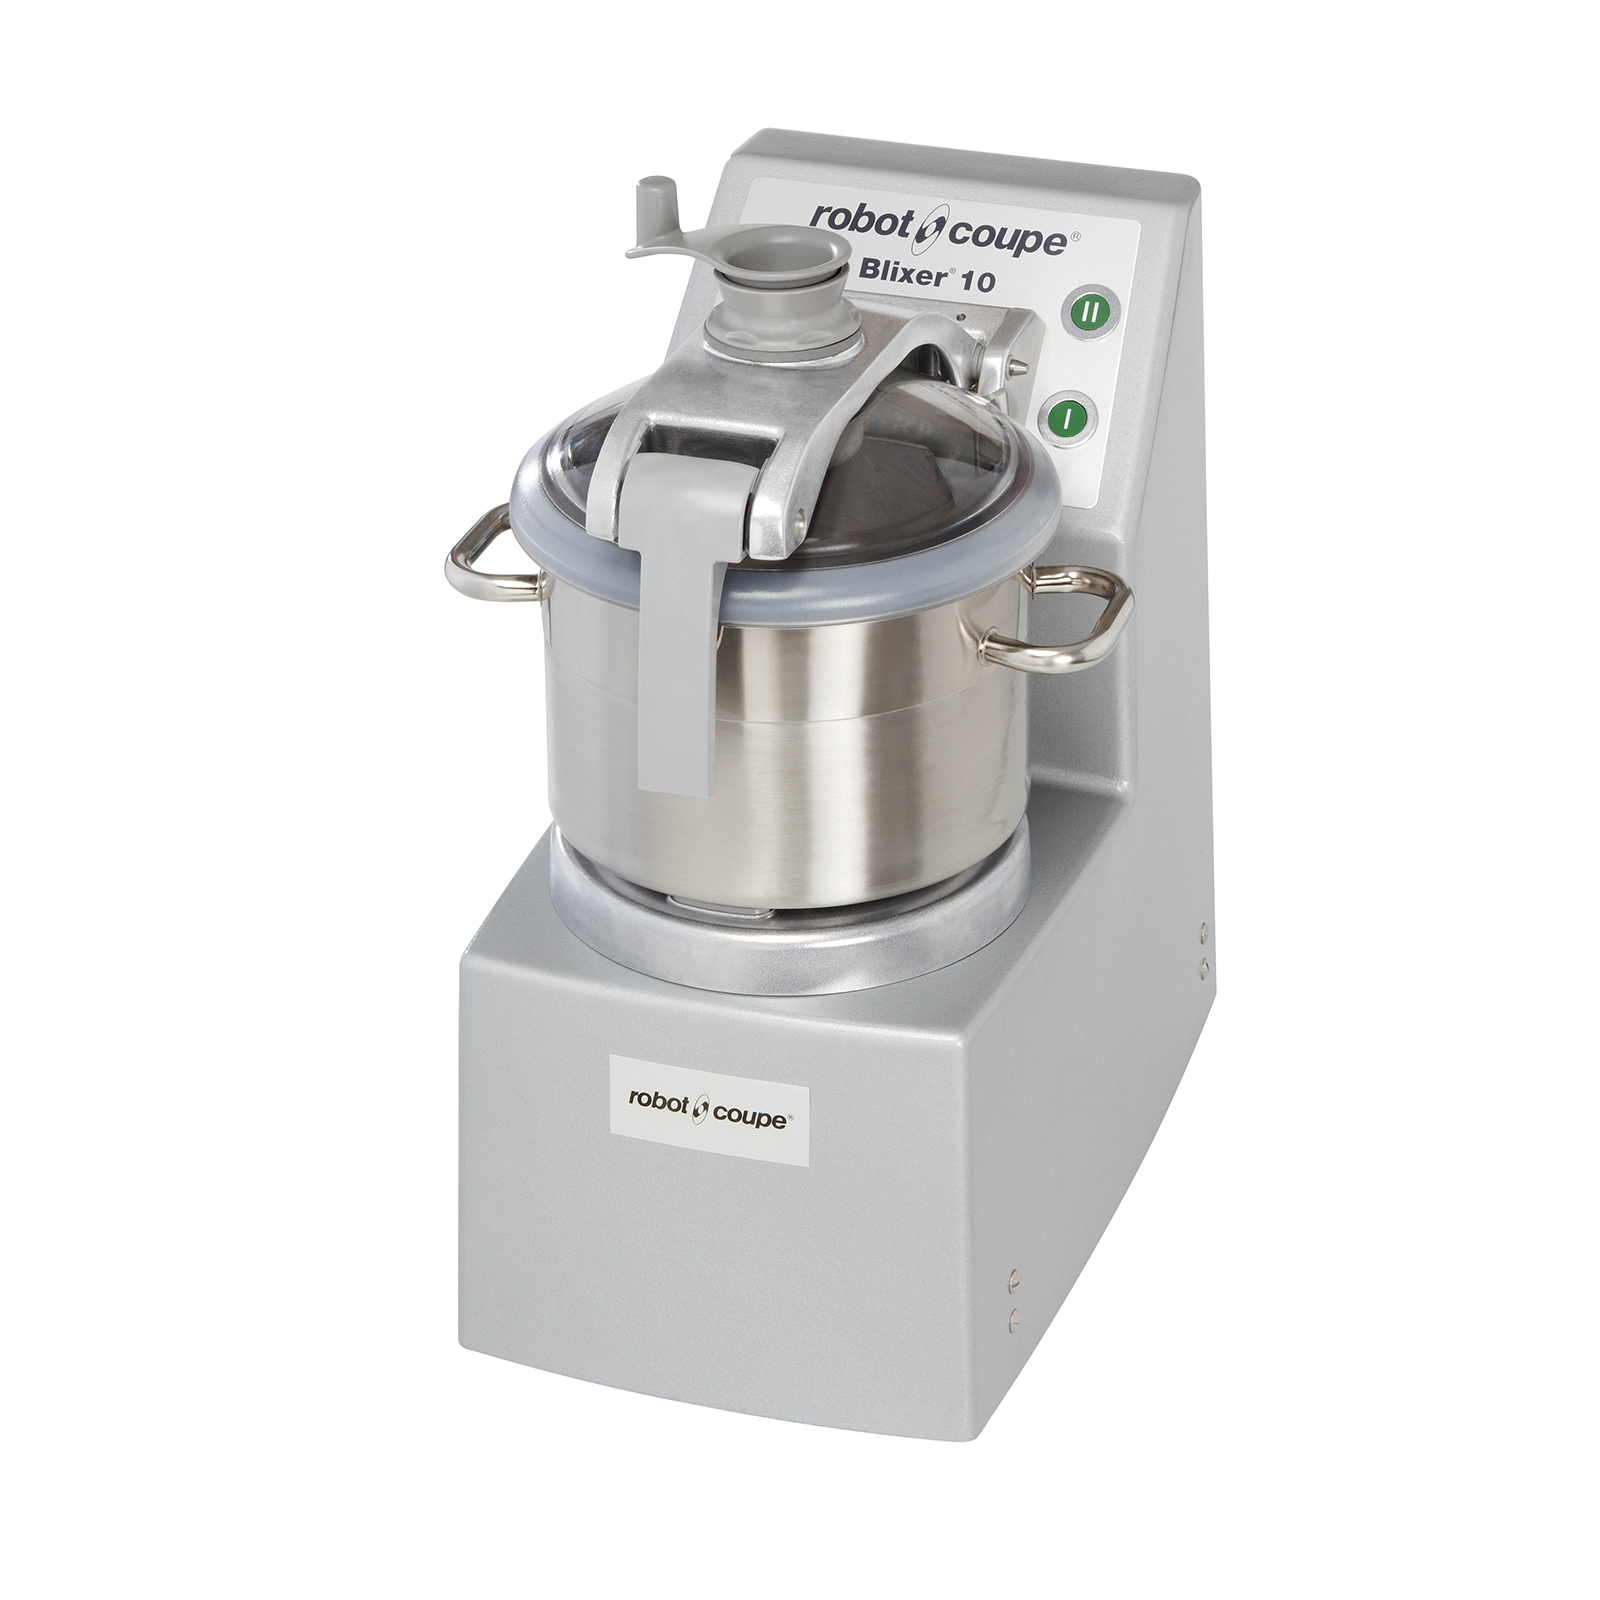 Robot Coupe BLIXER 10 food processor, benchtop / countertop